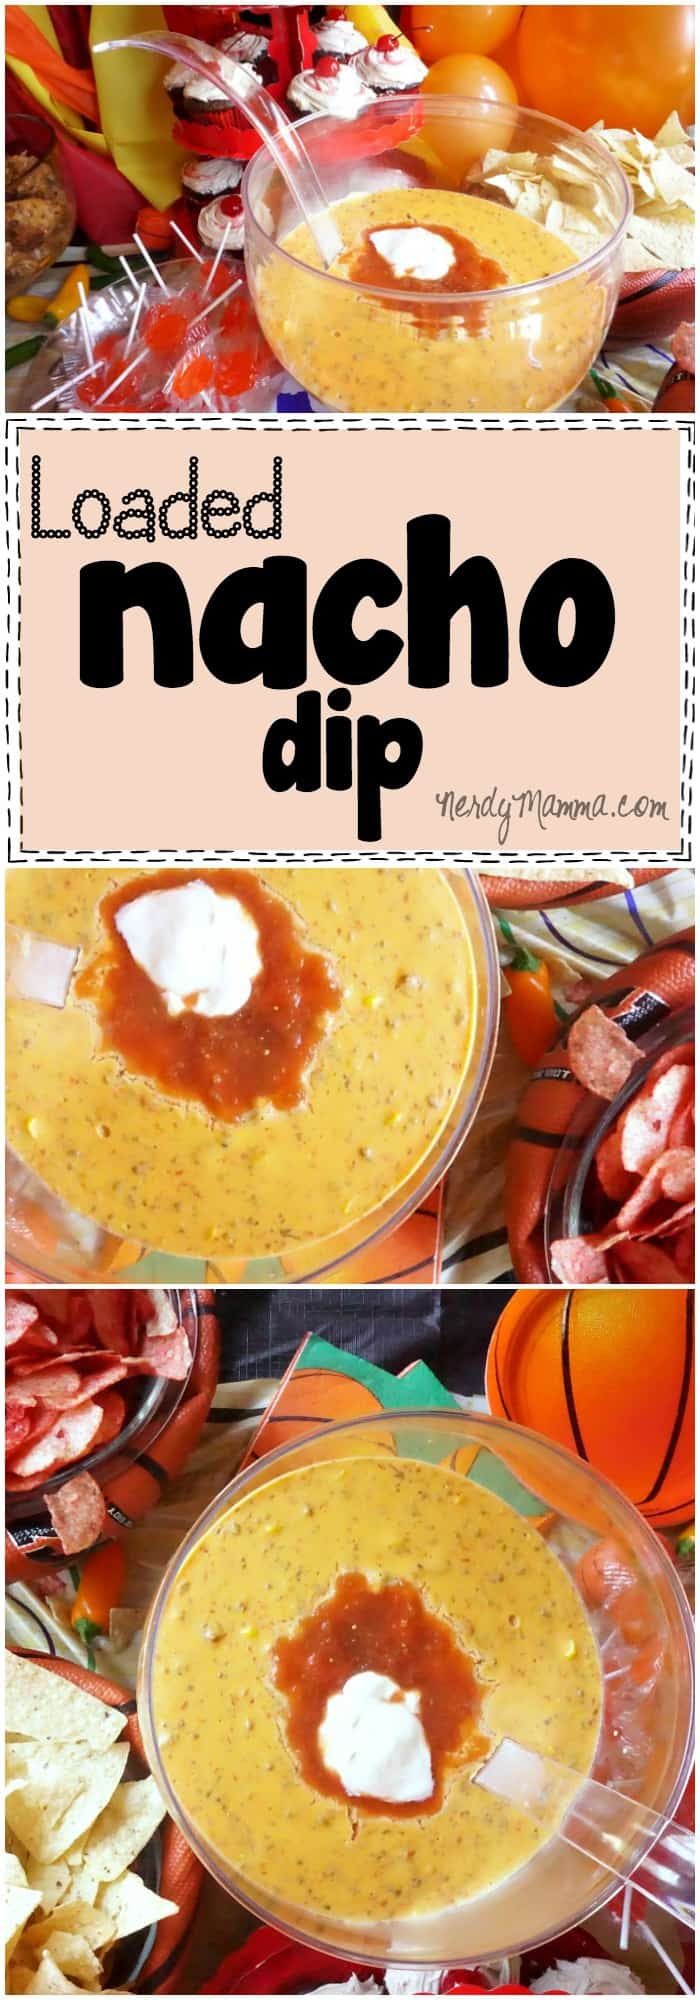 This recipe for loaded nacho dip is so awesome. And easy--did you even know you could make queso in the slow cooker Love it!